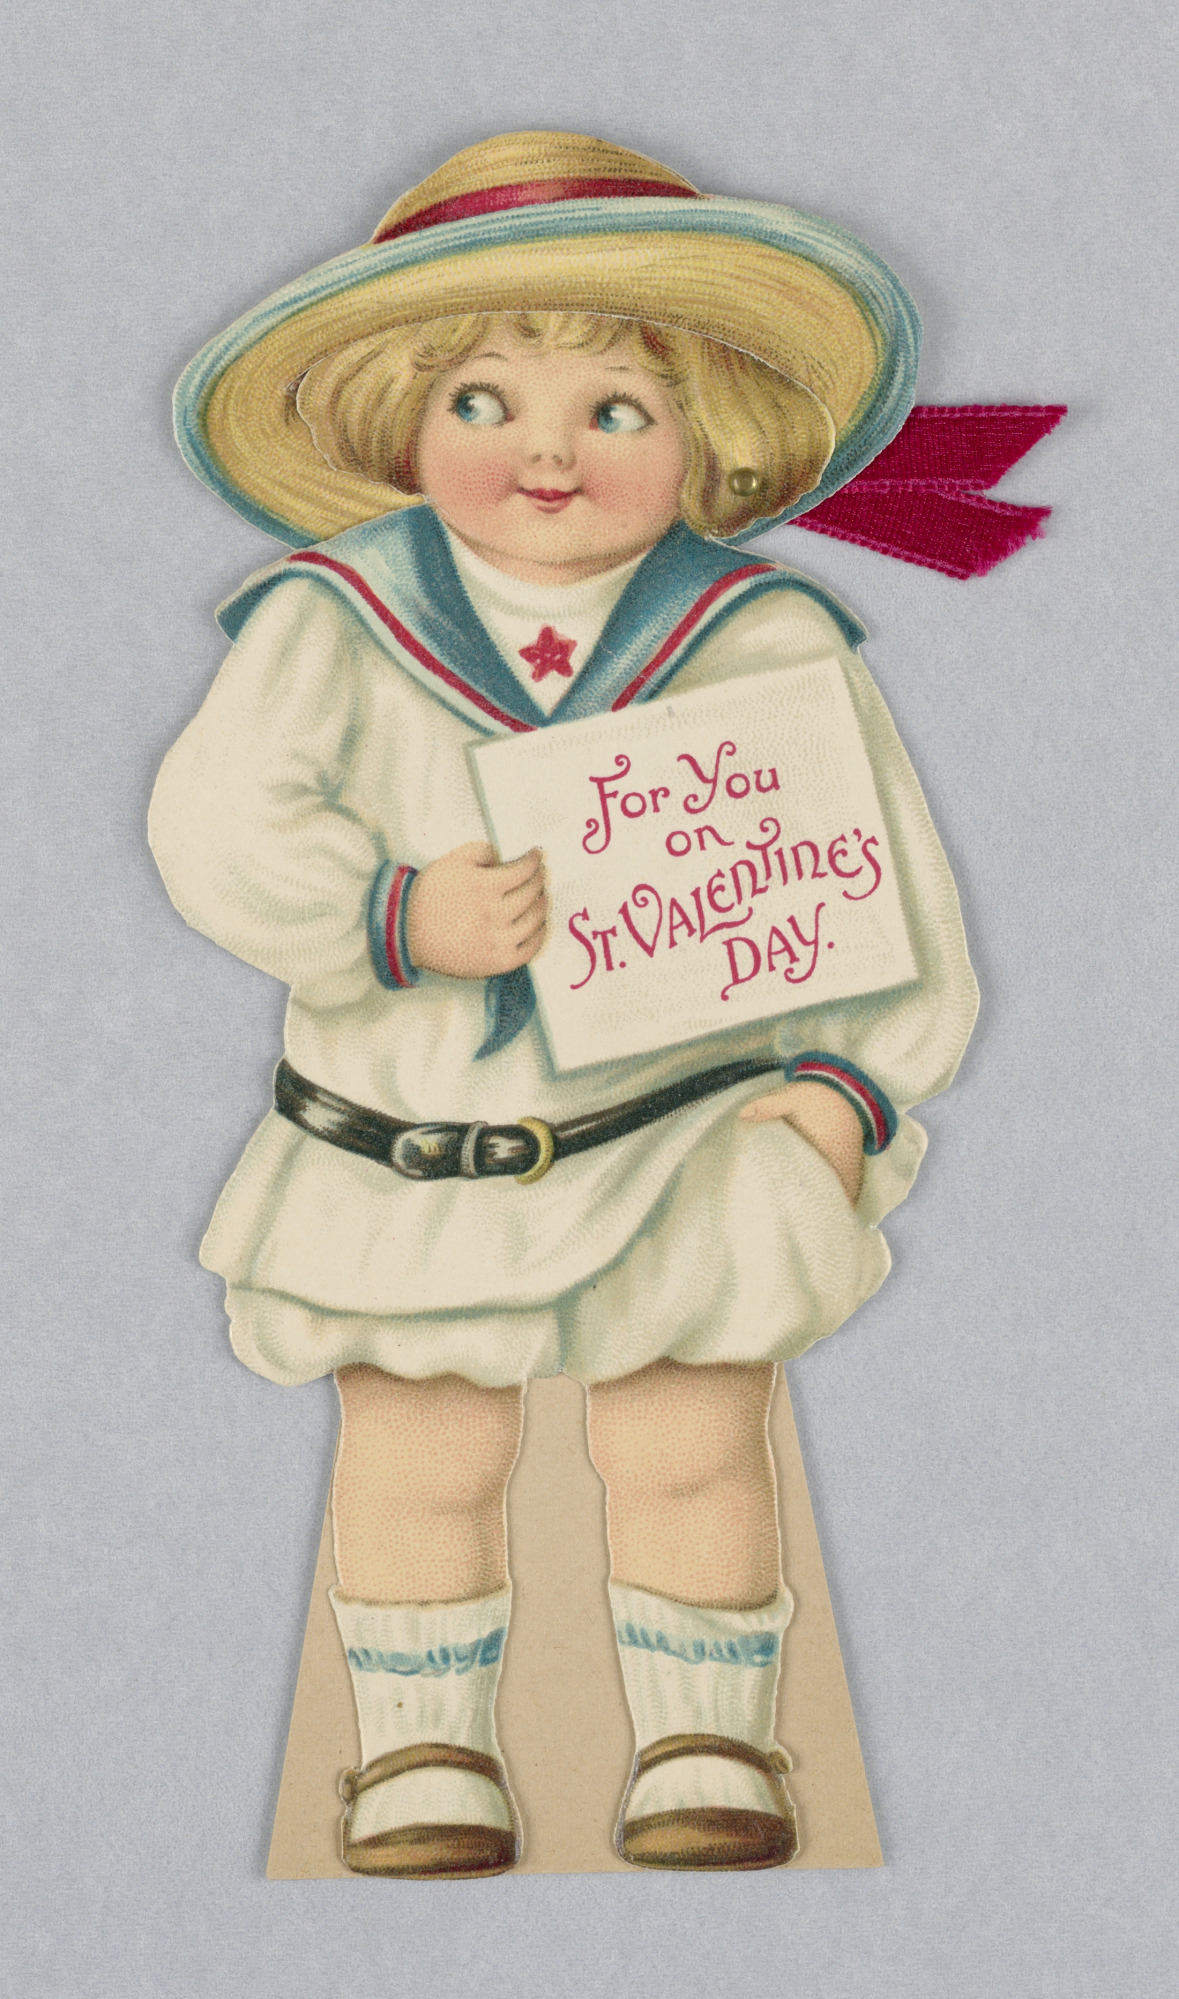 images for For You On St. Valentine's Day